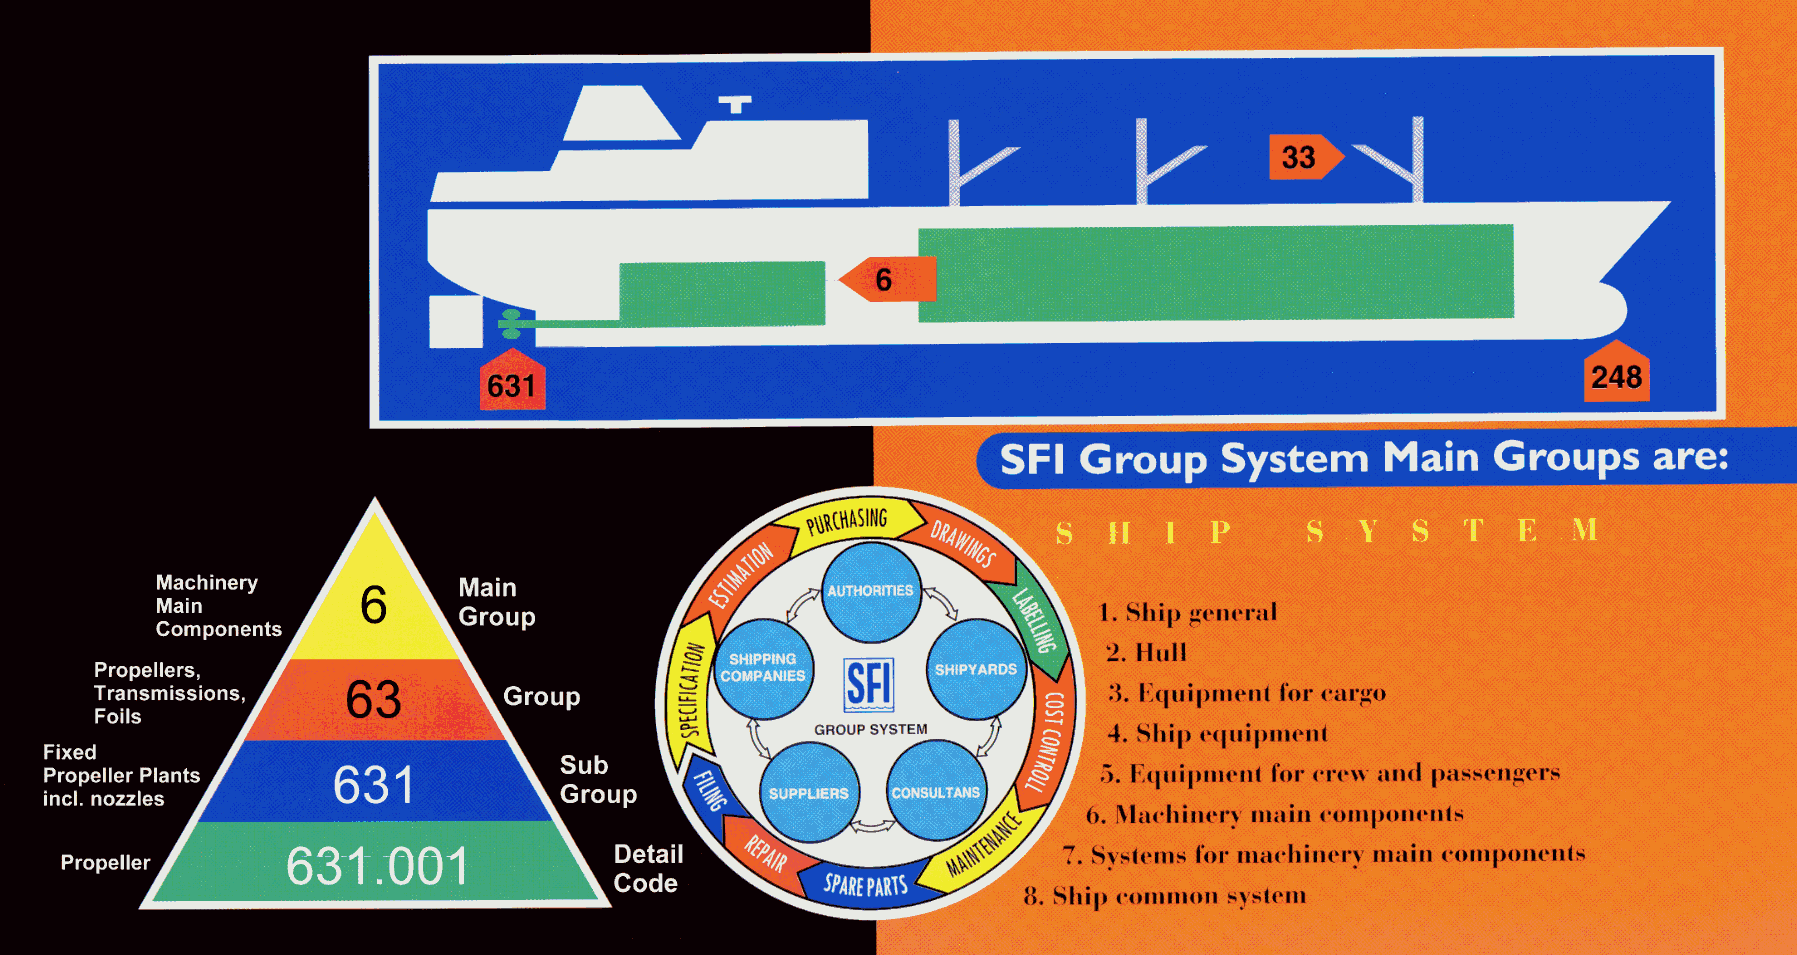 SFI Coding and Classification System - Wikipedia